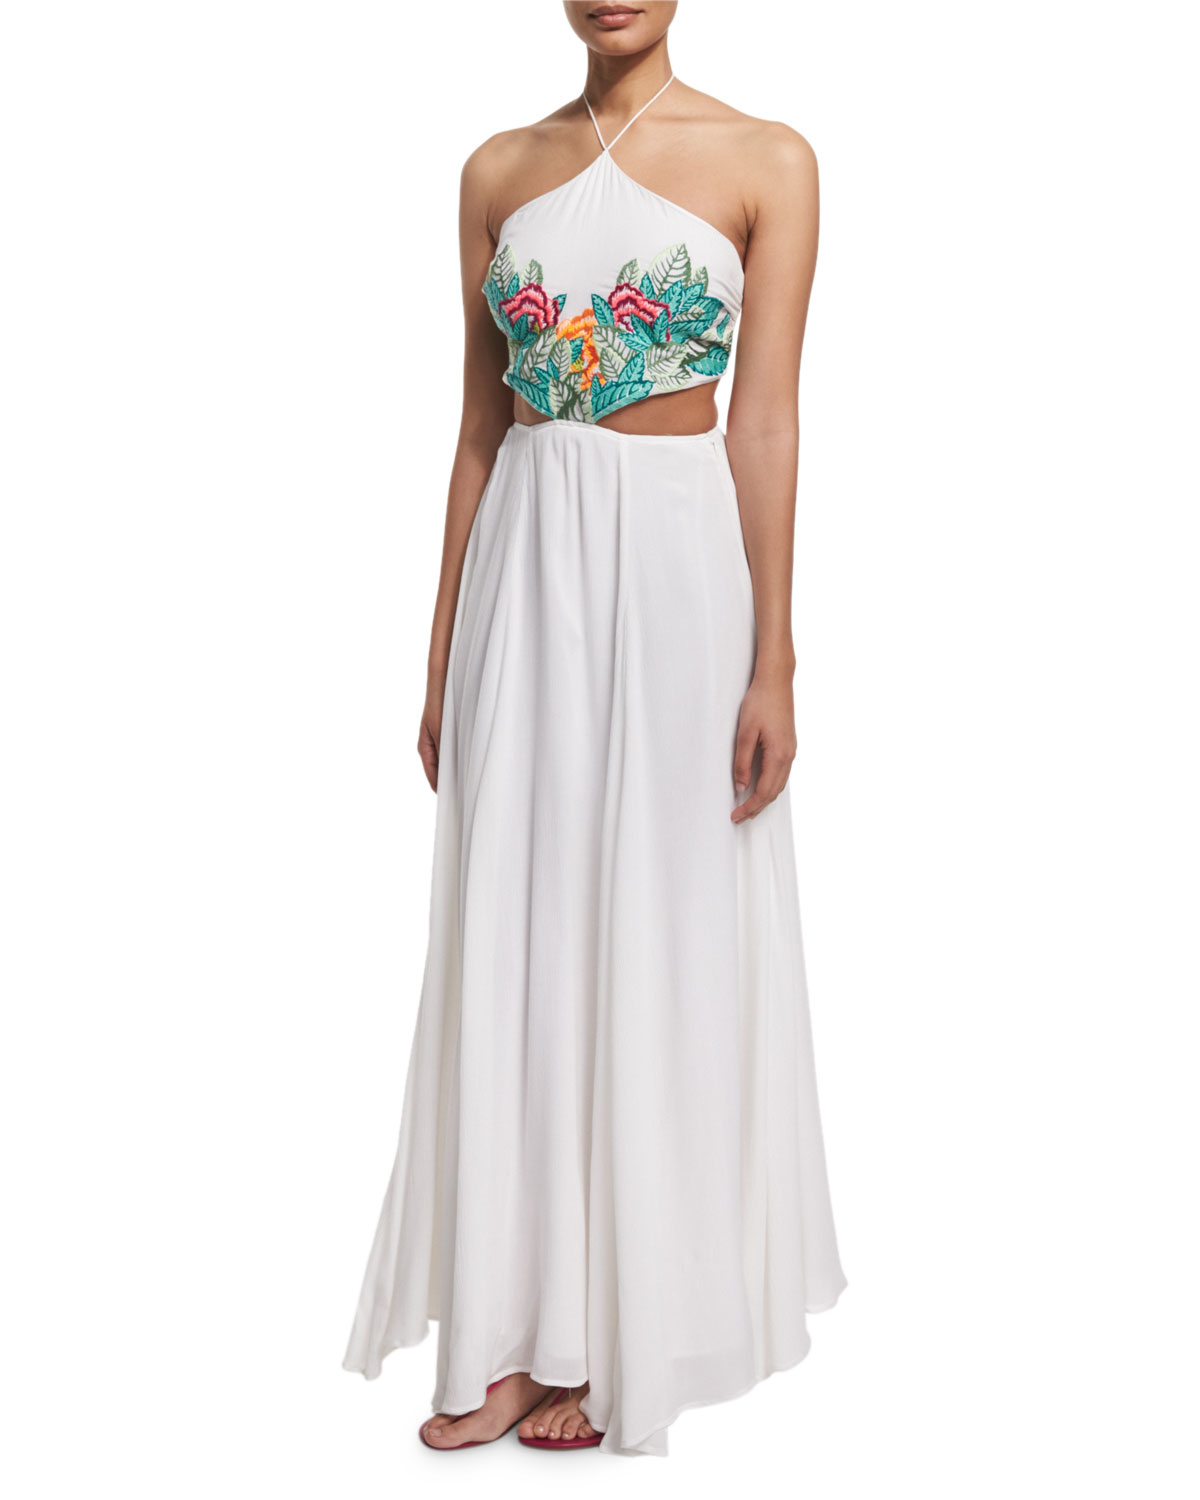 Mara Hoffman Embroidered-leaf Cutout Maxi Dress In White